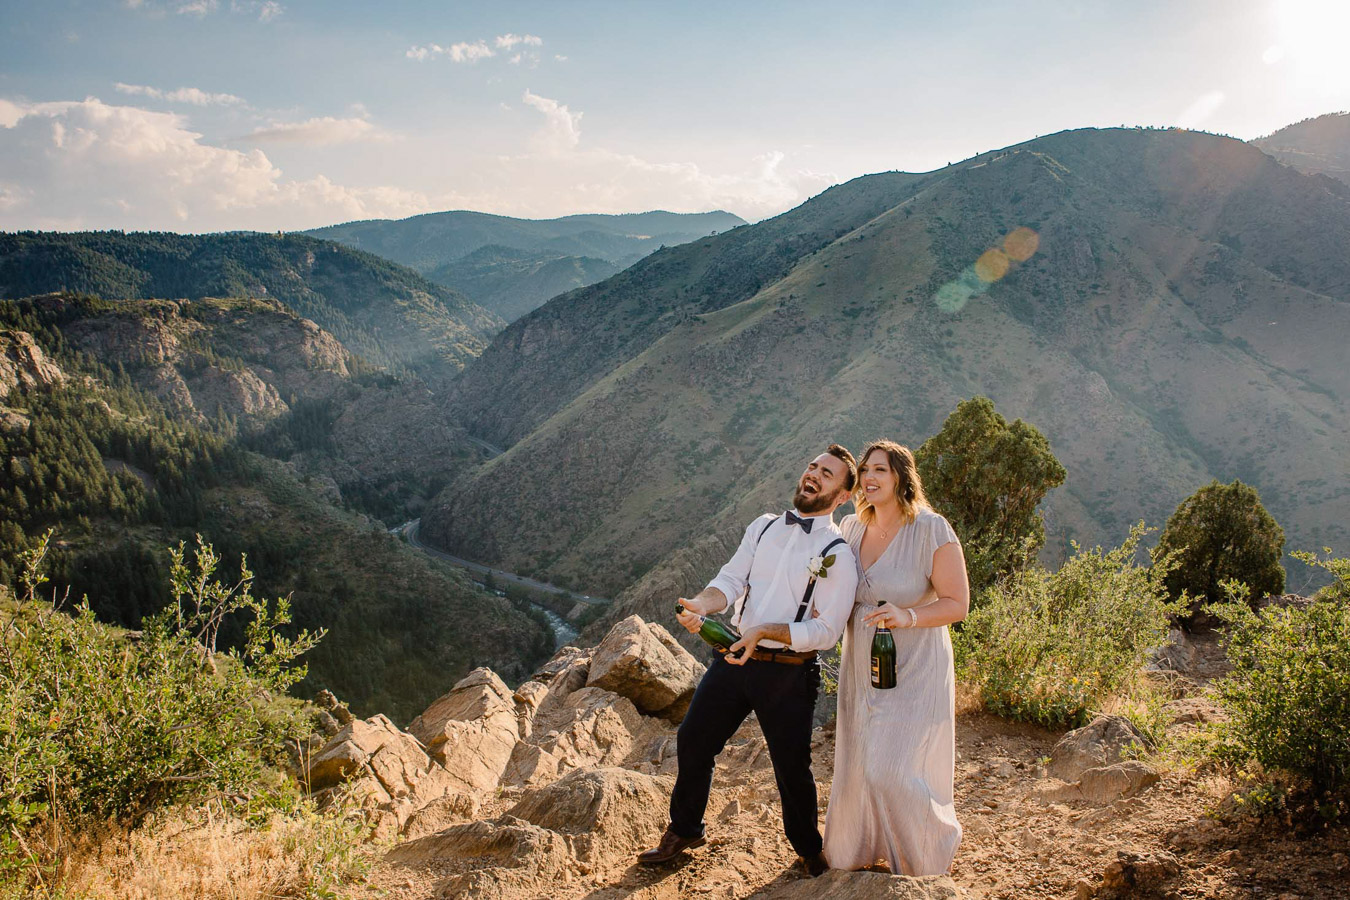 Colorado Mountain Elopement Photographers {Katy & Christian | Elopement | By Brittany} | Clear Creek Golden, Colorado Elopement